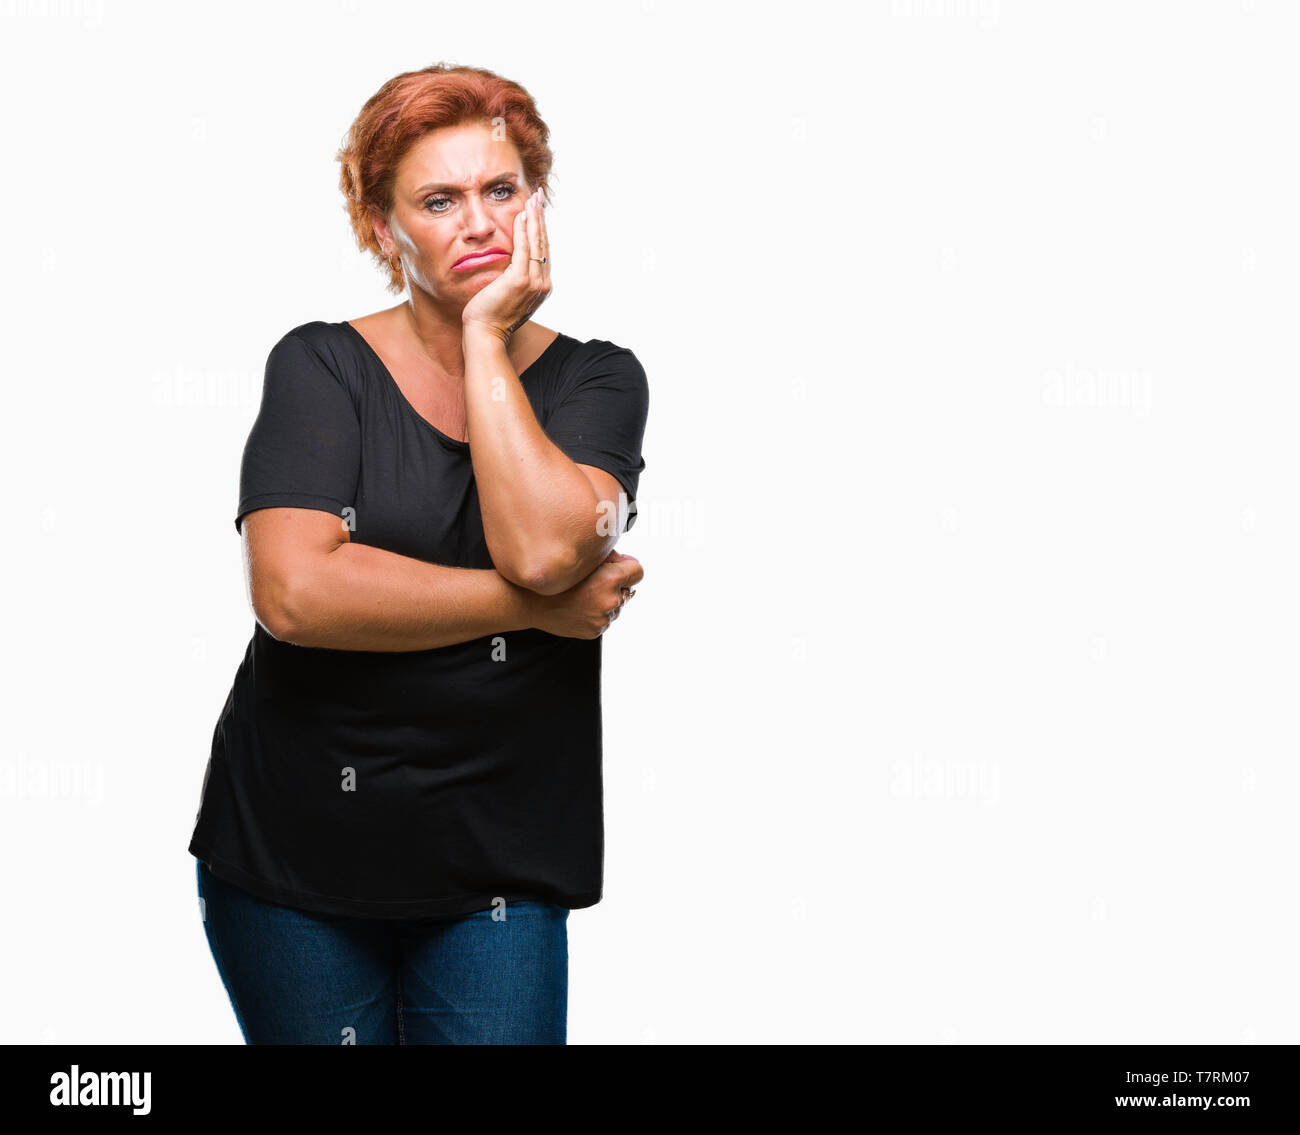 Atrractive senior caucasian redhead woman over isolated background thinking looking tired and bored with depression problems with crossed arms. Stock Photo